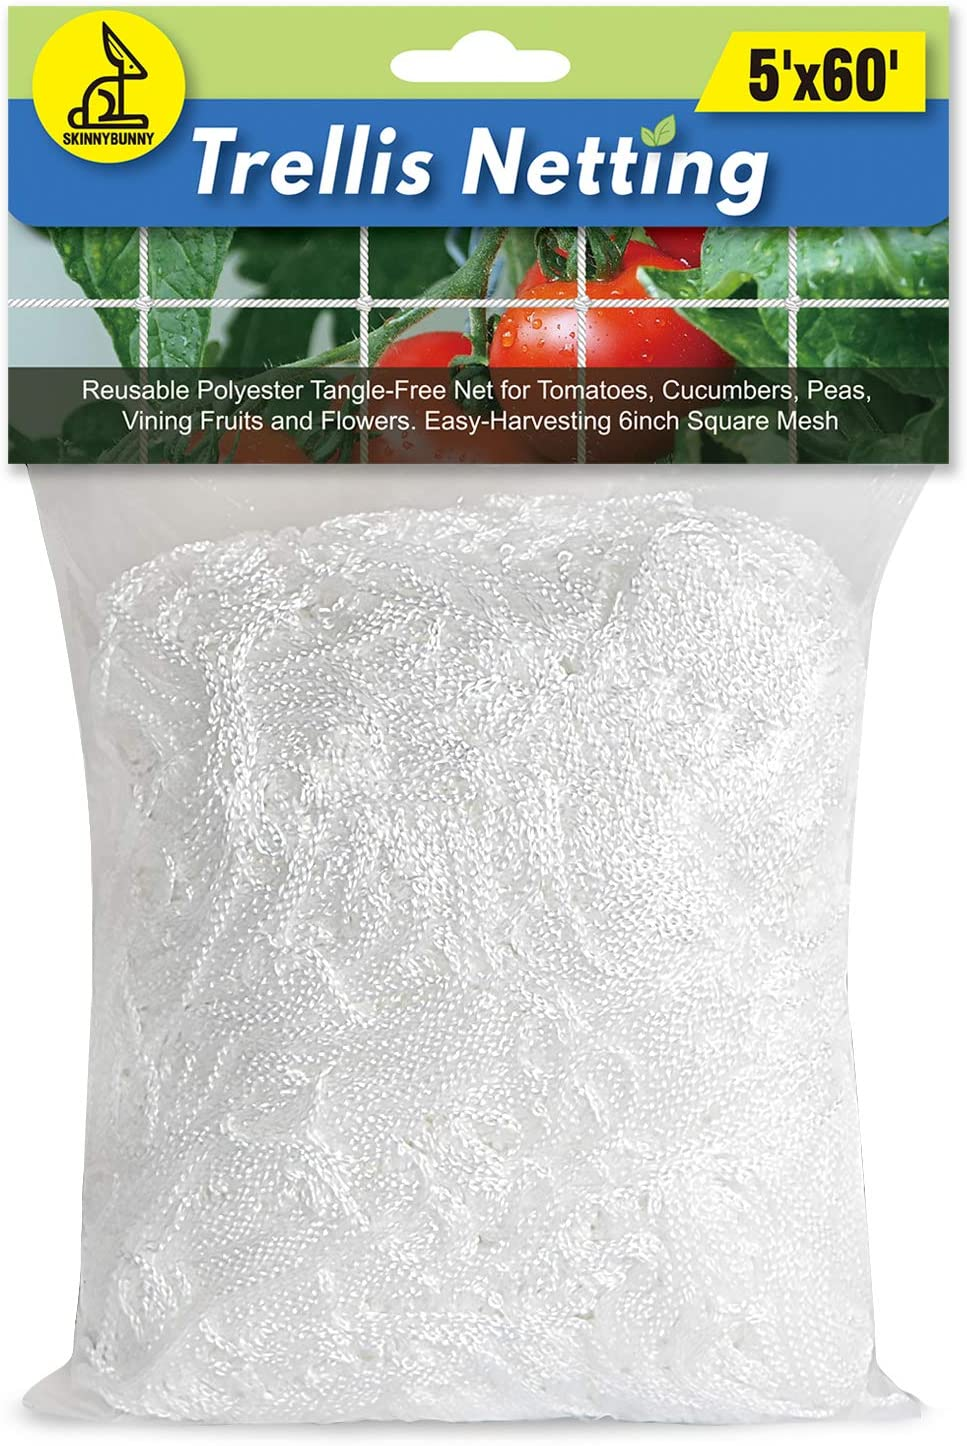 SKINNYBUNNY 5x60ft Trellis Netting, Durable Garden Grow Netting, Heavy-Duty Nylon String Net, Designed for Climbing Vining Plants, Fruits and Vegetables, Hydroponics, Fit in All-Weather, 1-Pack